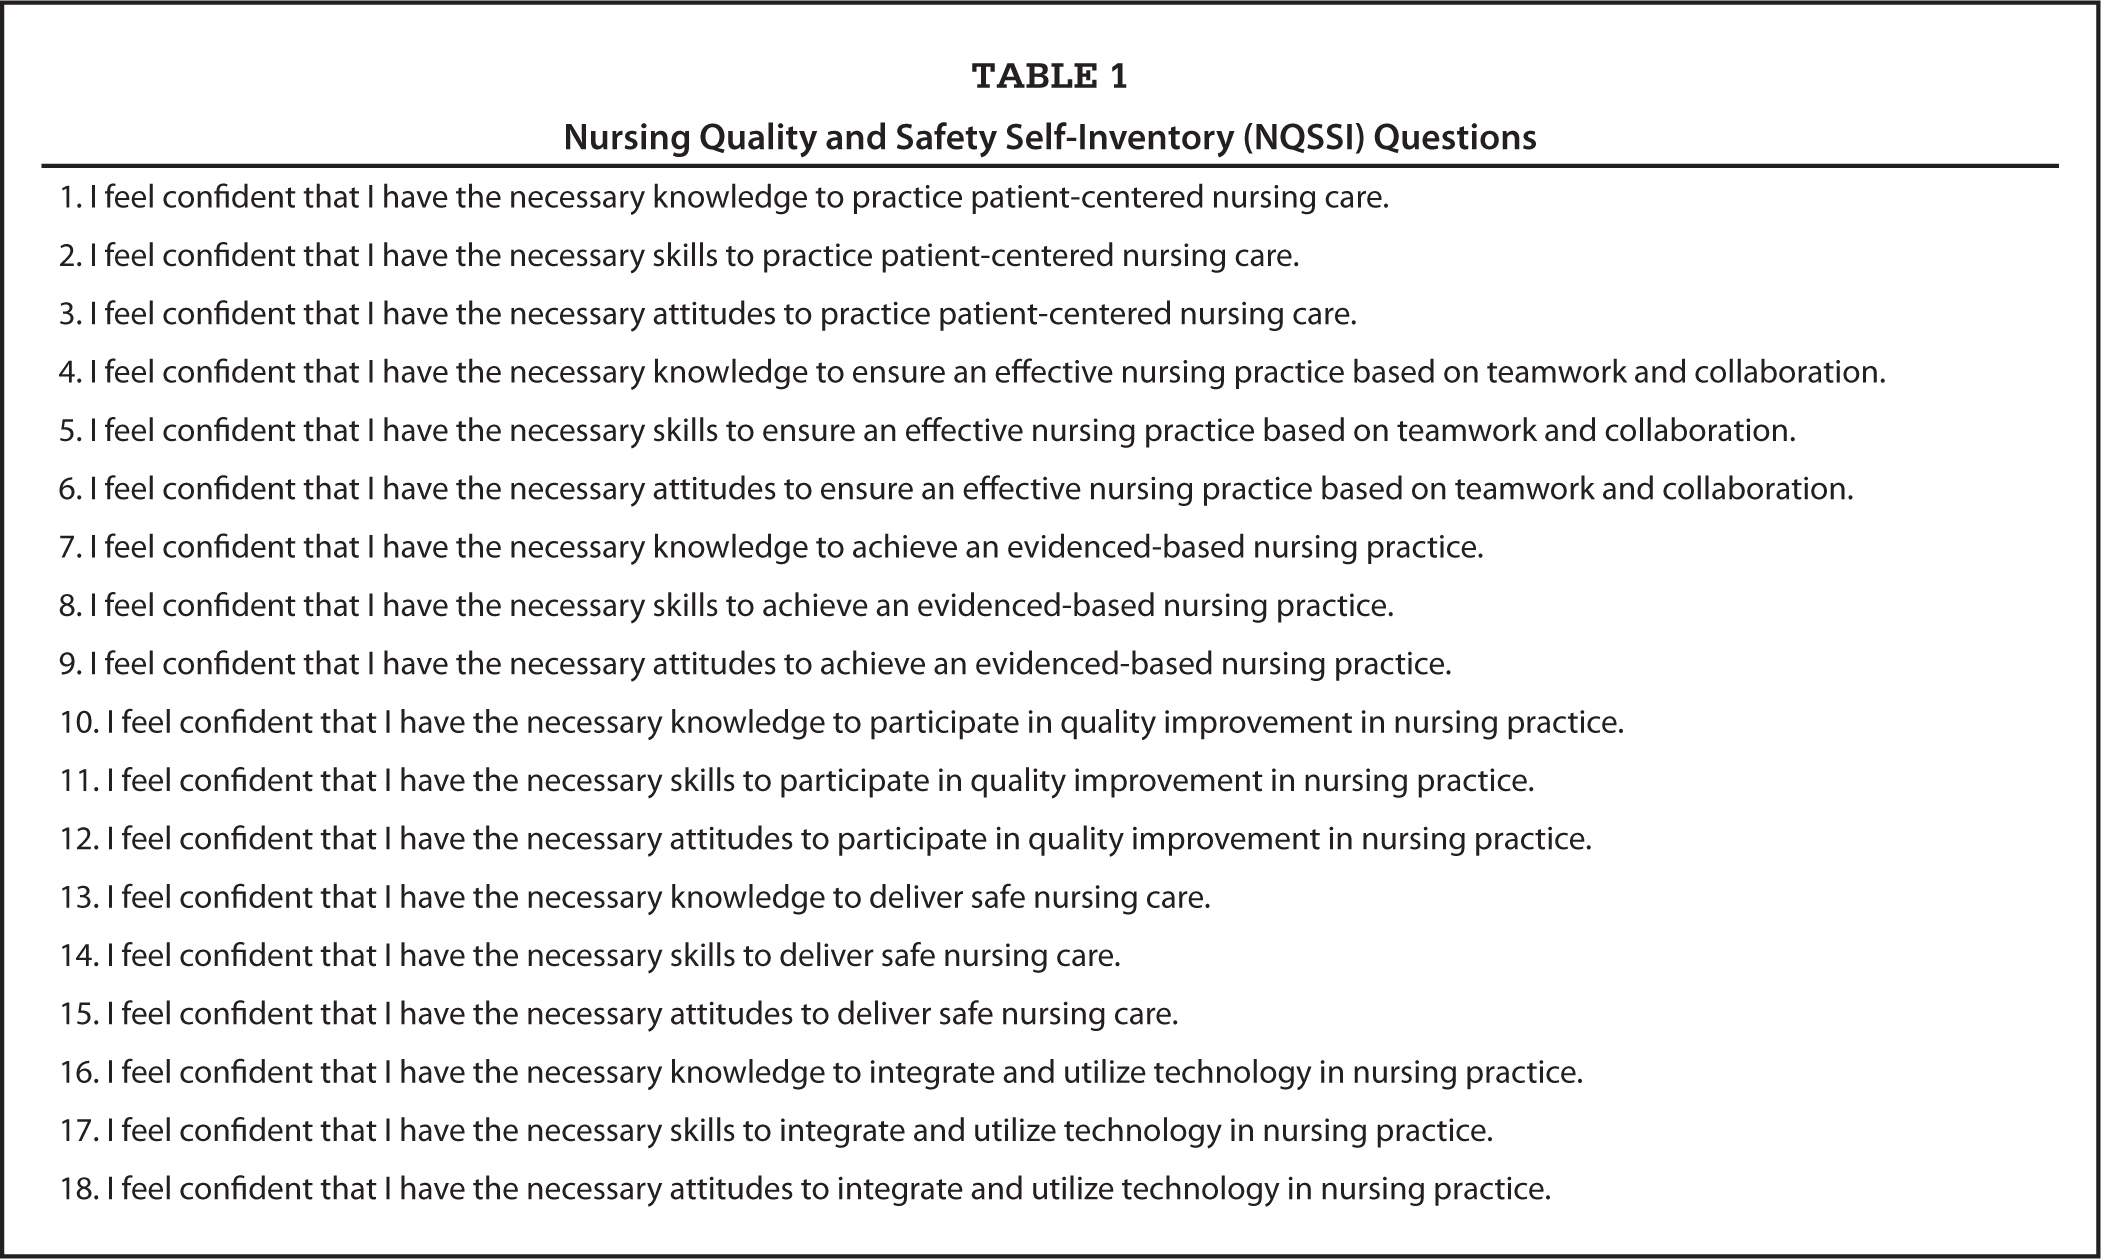 Nursing Quality and Safety Self-Inventory (NQSSI) Questions